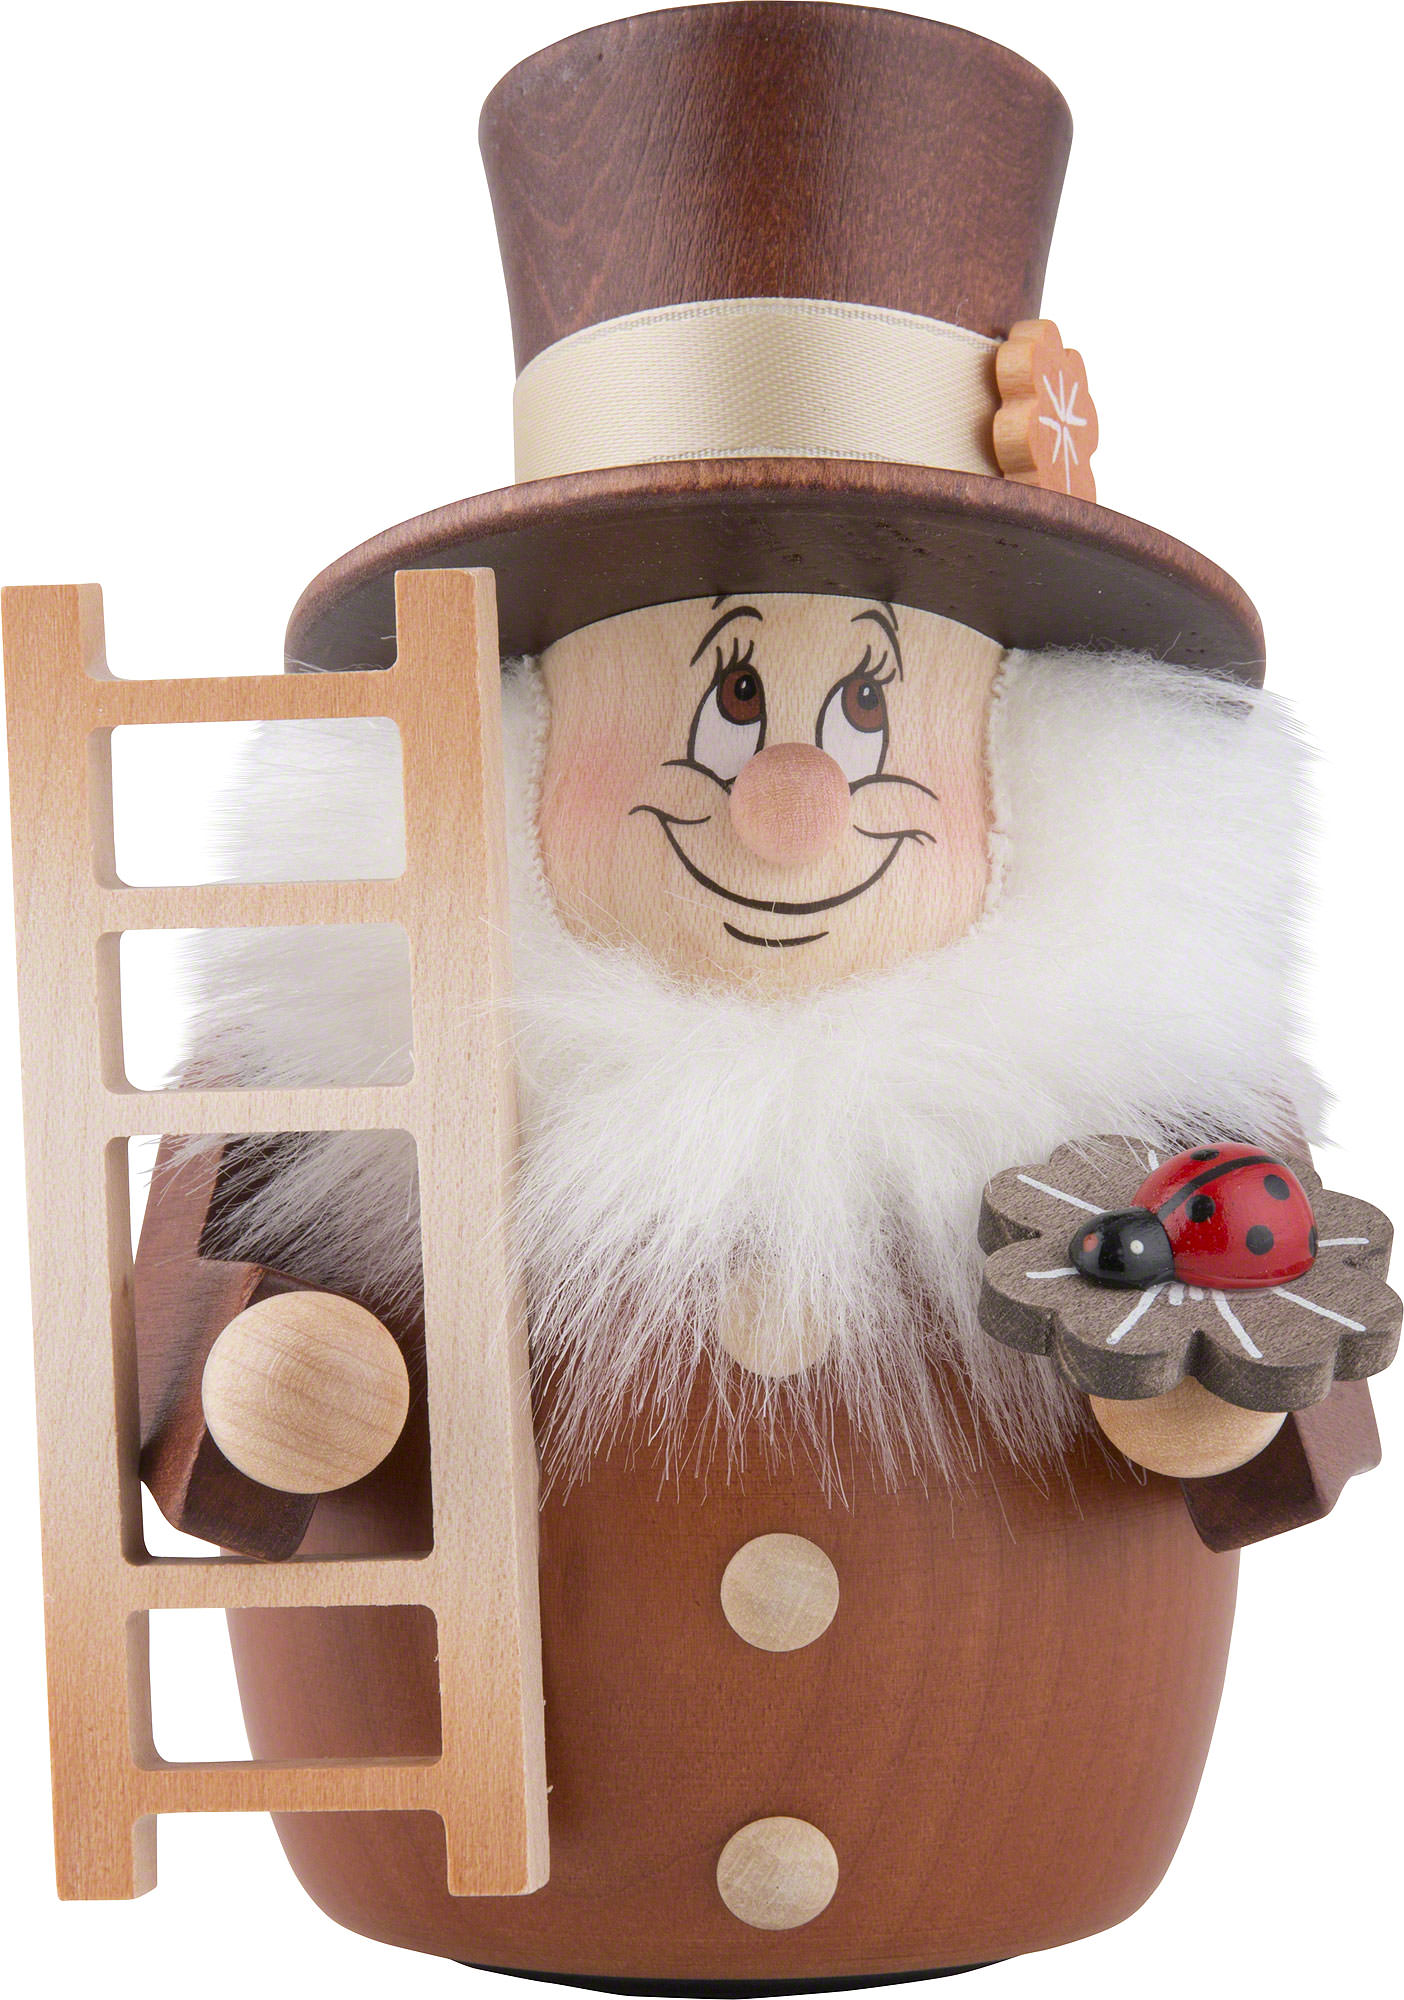 Gnome 4: Teeter Gnome Chimney Sweep Natural (12 Cm/4.7in) By